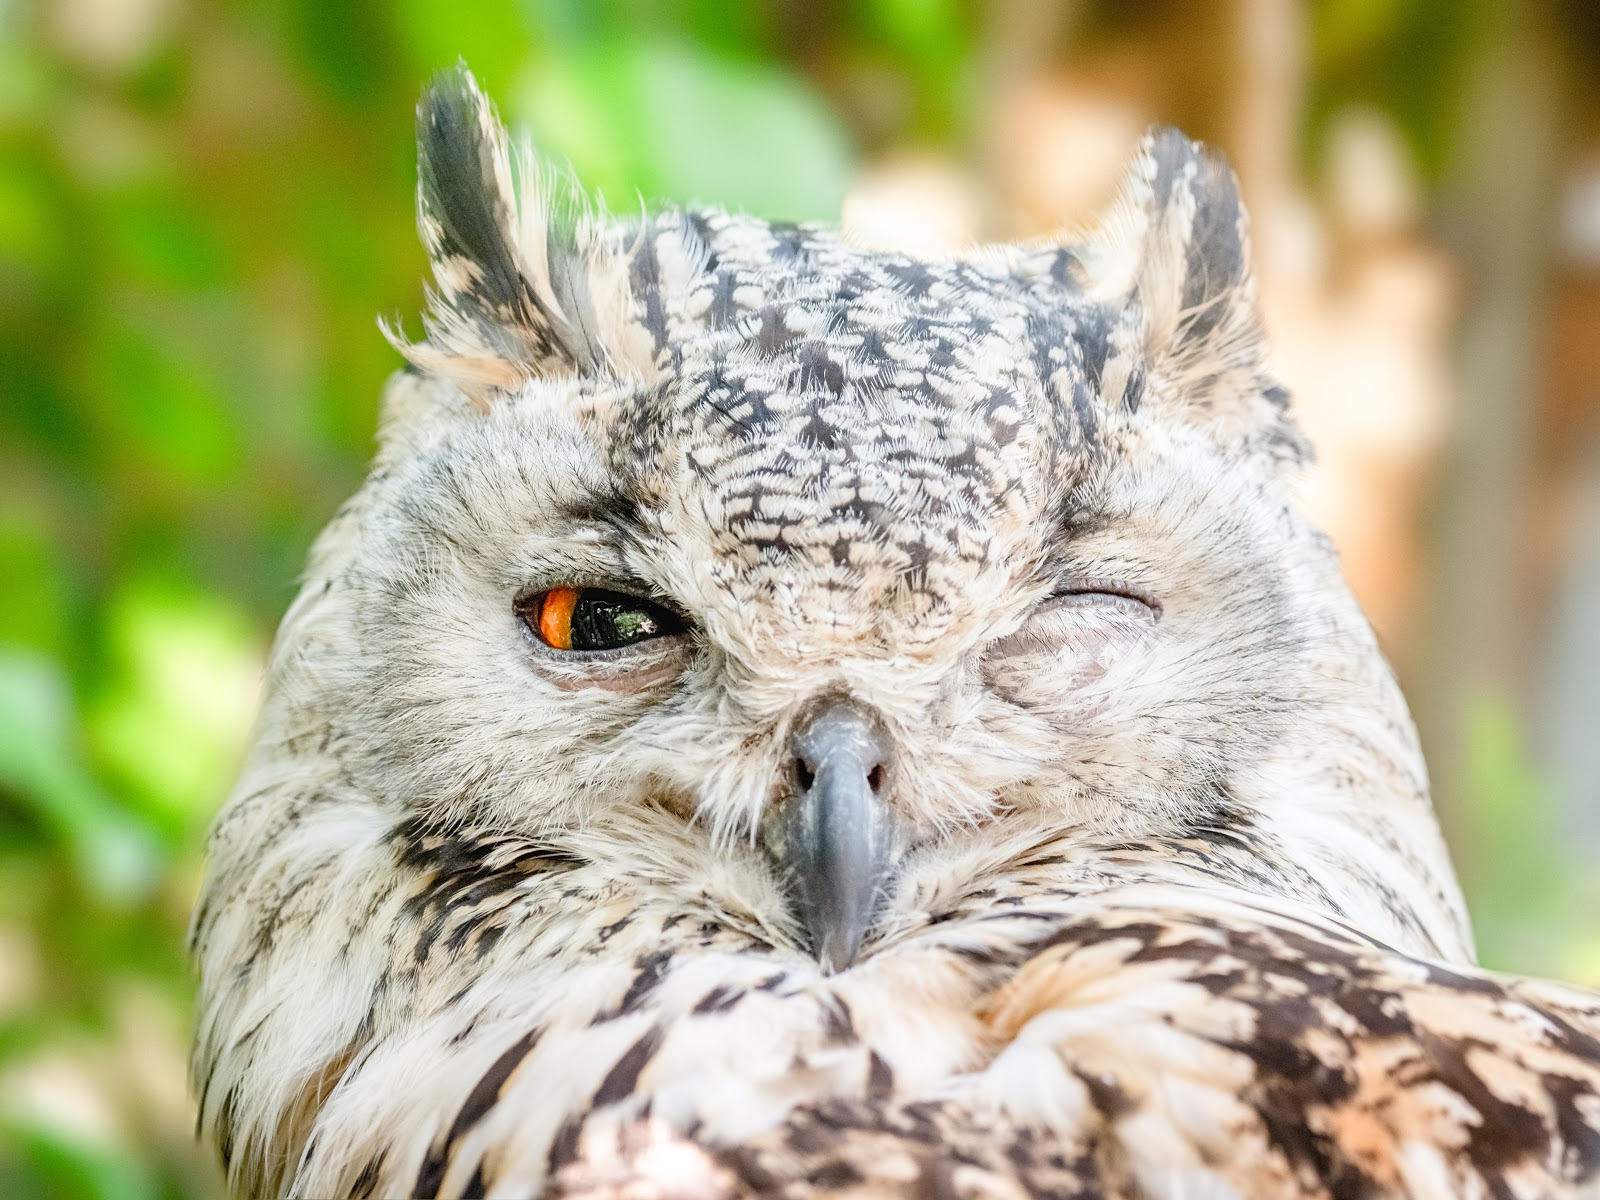 close-up-photo-of-owl-with-one-eye-open-bird-images